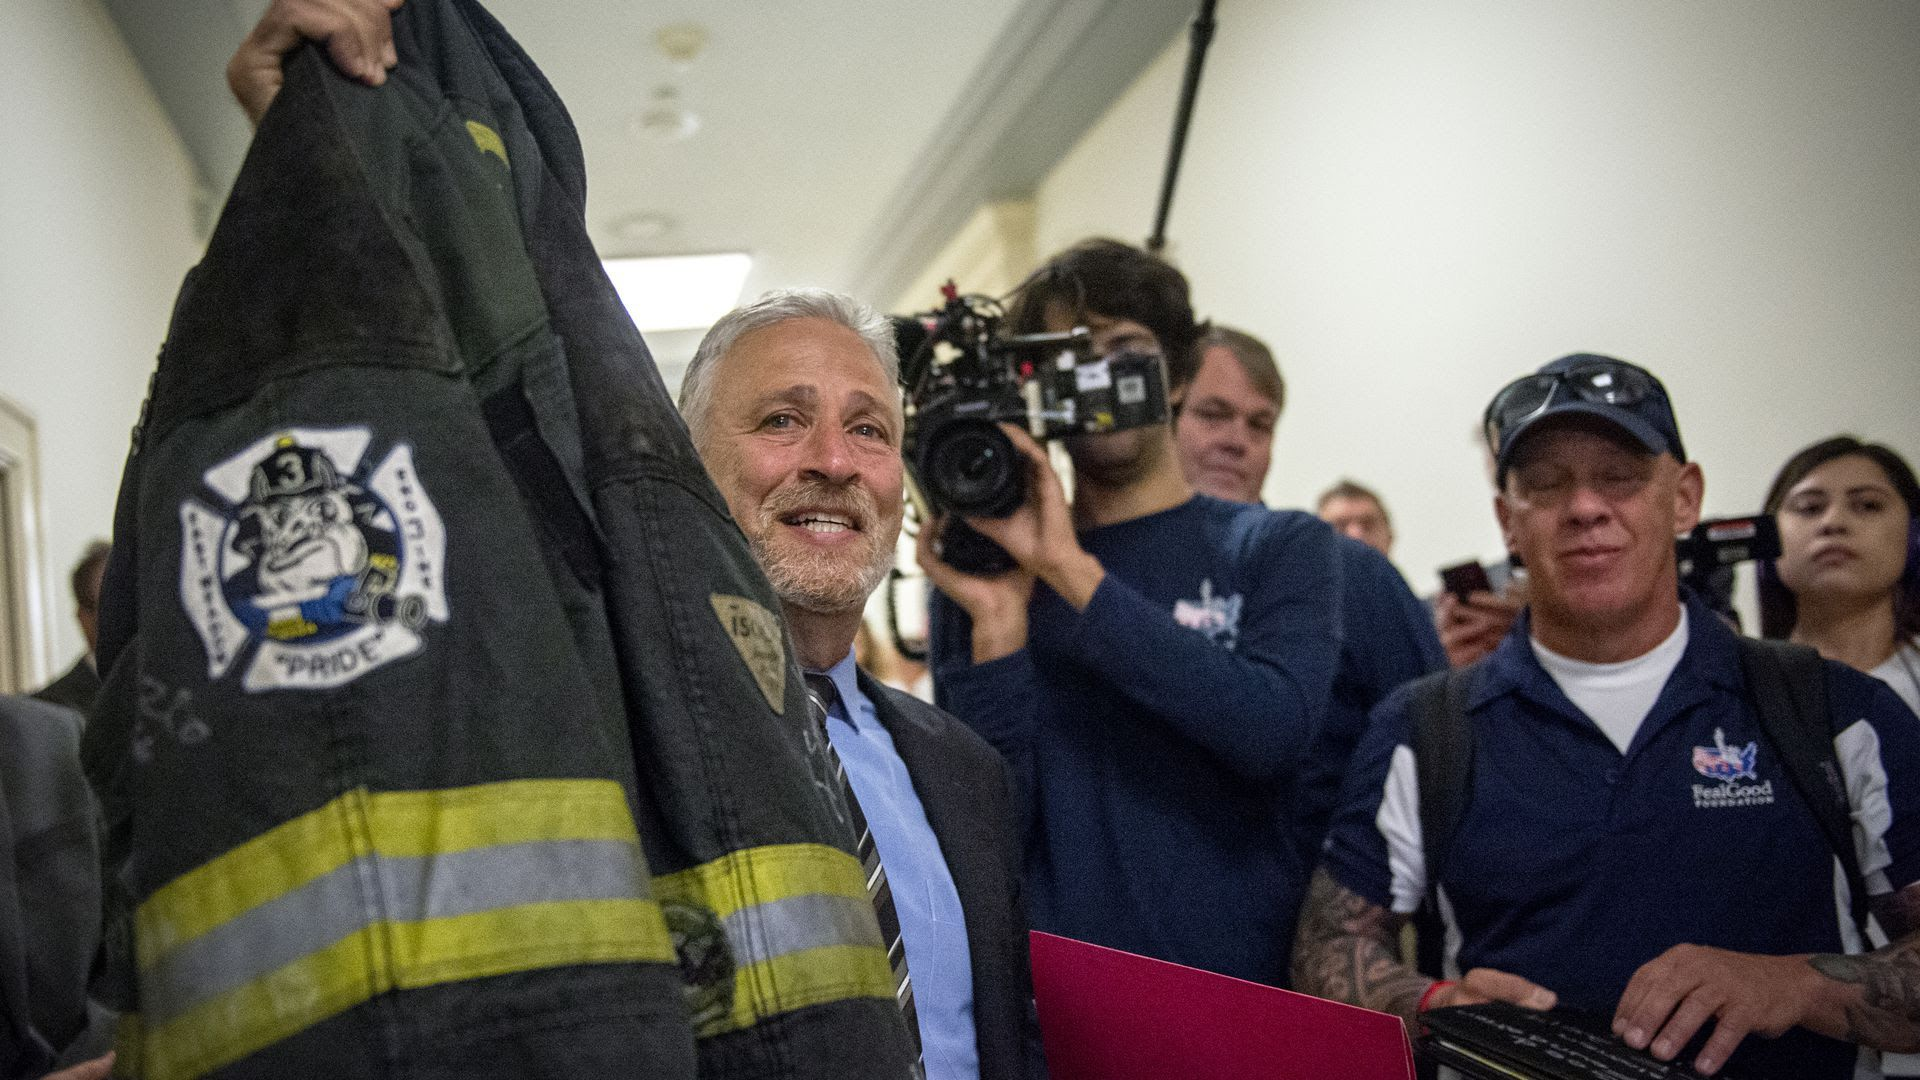 Jon Stewart's 9/11 victims crusade included lots of Fox News